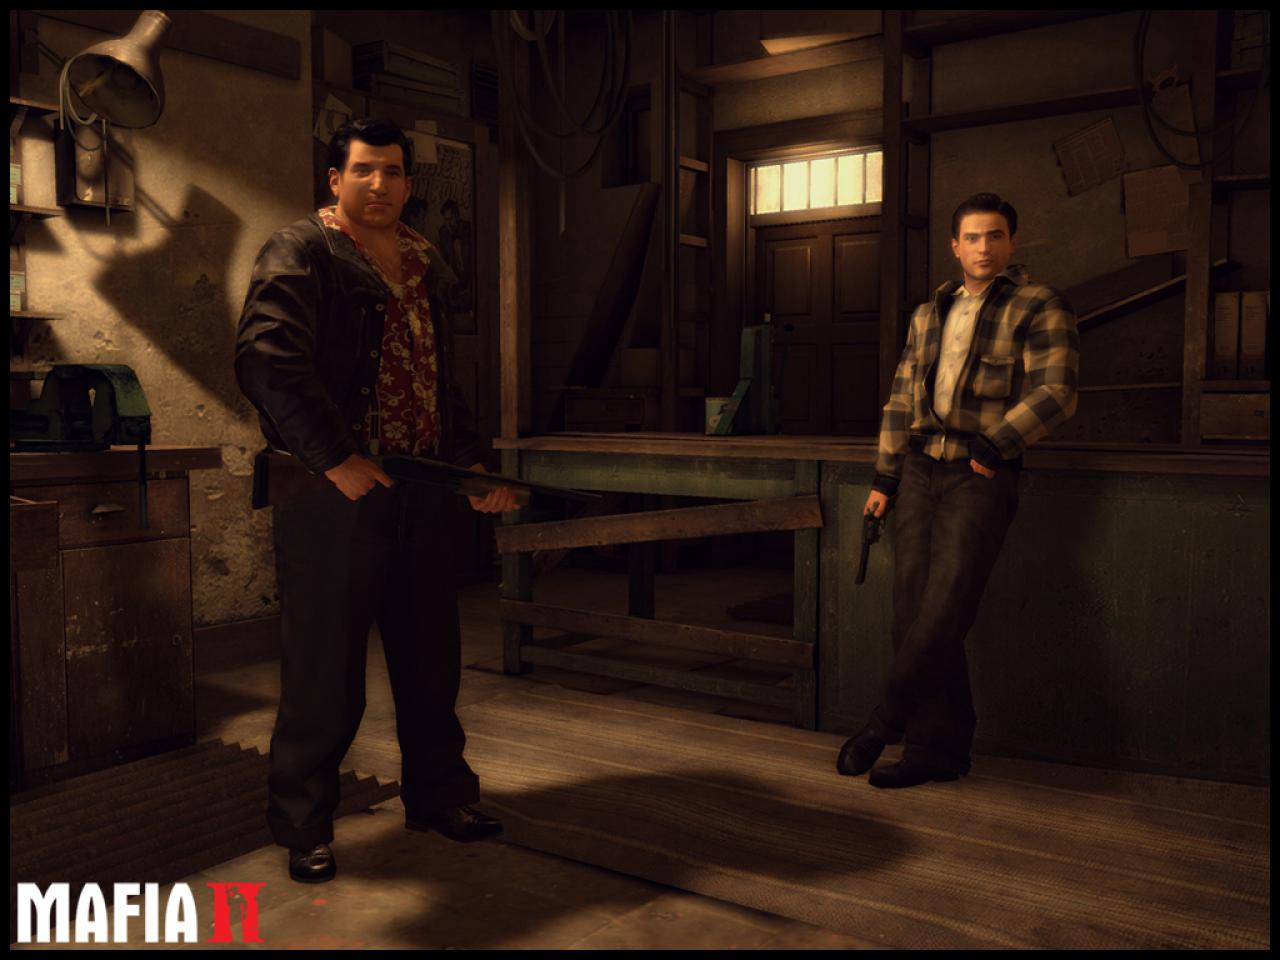 [10/06/08] New screenshots of <b>Mafia 2</b> surfaced on the web. According to current rumors, the game will be released this year.